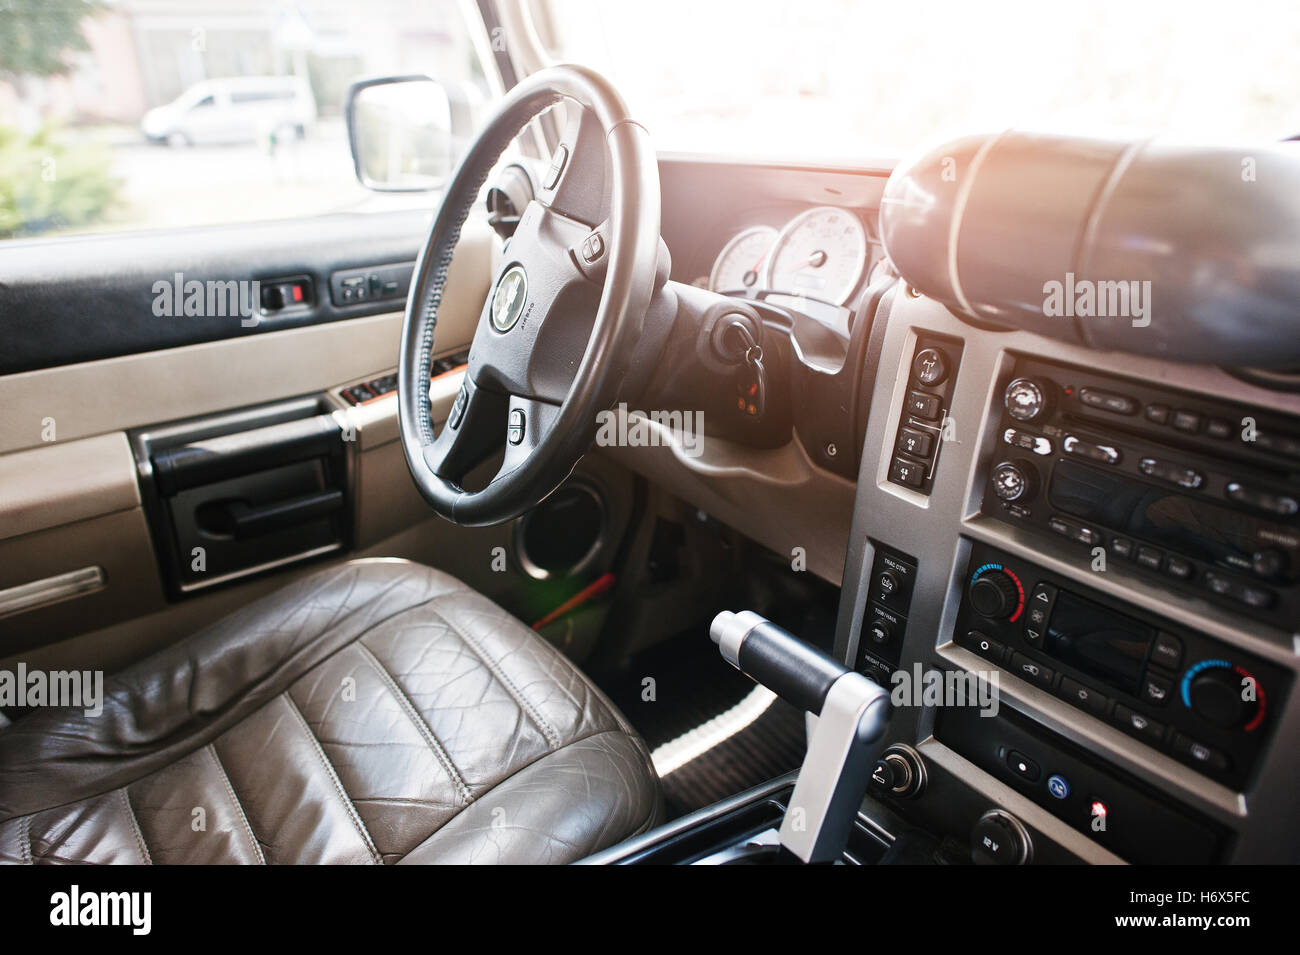 Hummer h2 stock photos hummer h2 stock images alamy hai ukraine october 20 2016 hummer h2 interior stock image vanachro Gallery